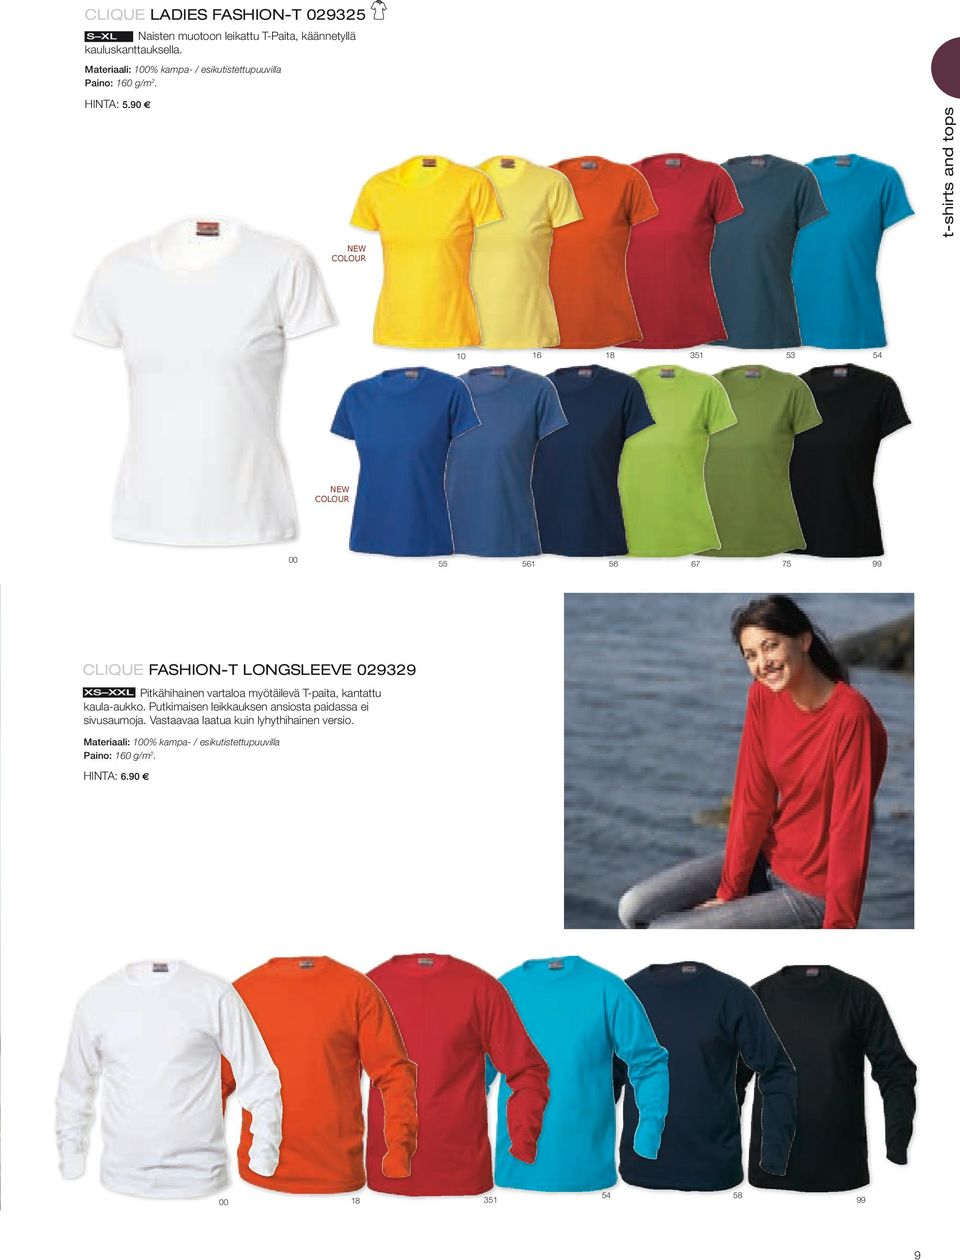 90 NEW COLOUR 1 10 18 351 53 5 NEW COLOUR 55 5 1 58 7 75 CLIQUE FASHION-T LONGSLEEVE 029329 Pitkähihainen vartaloa myötäilevä